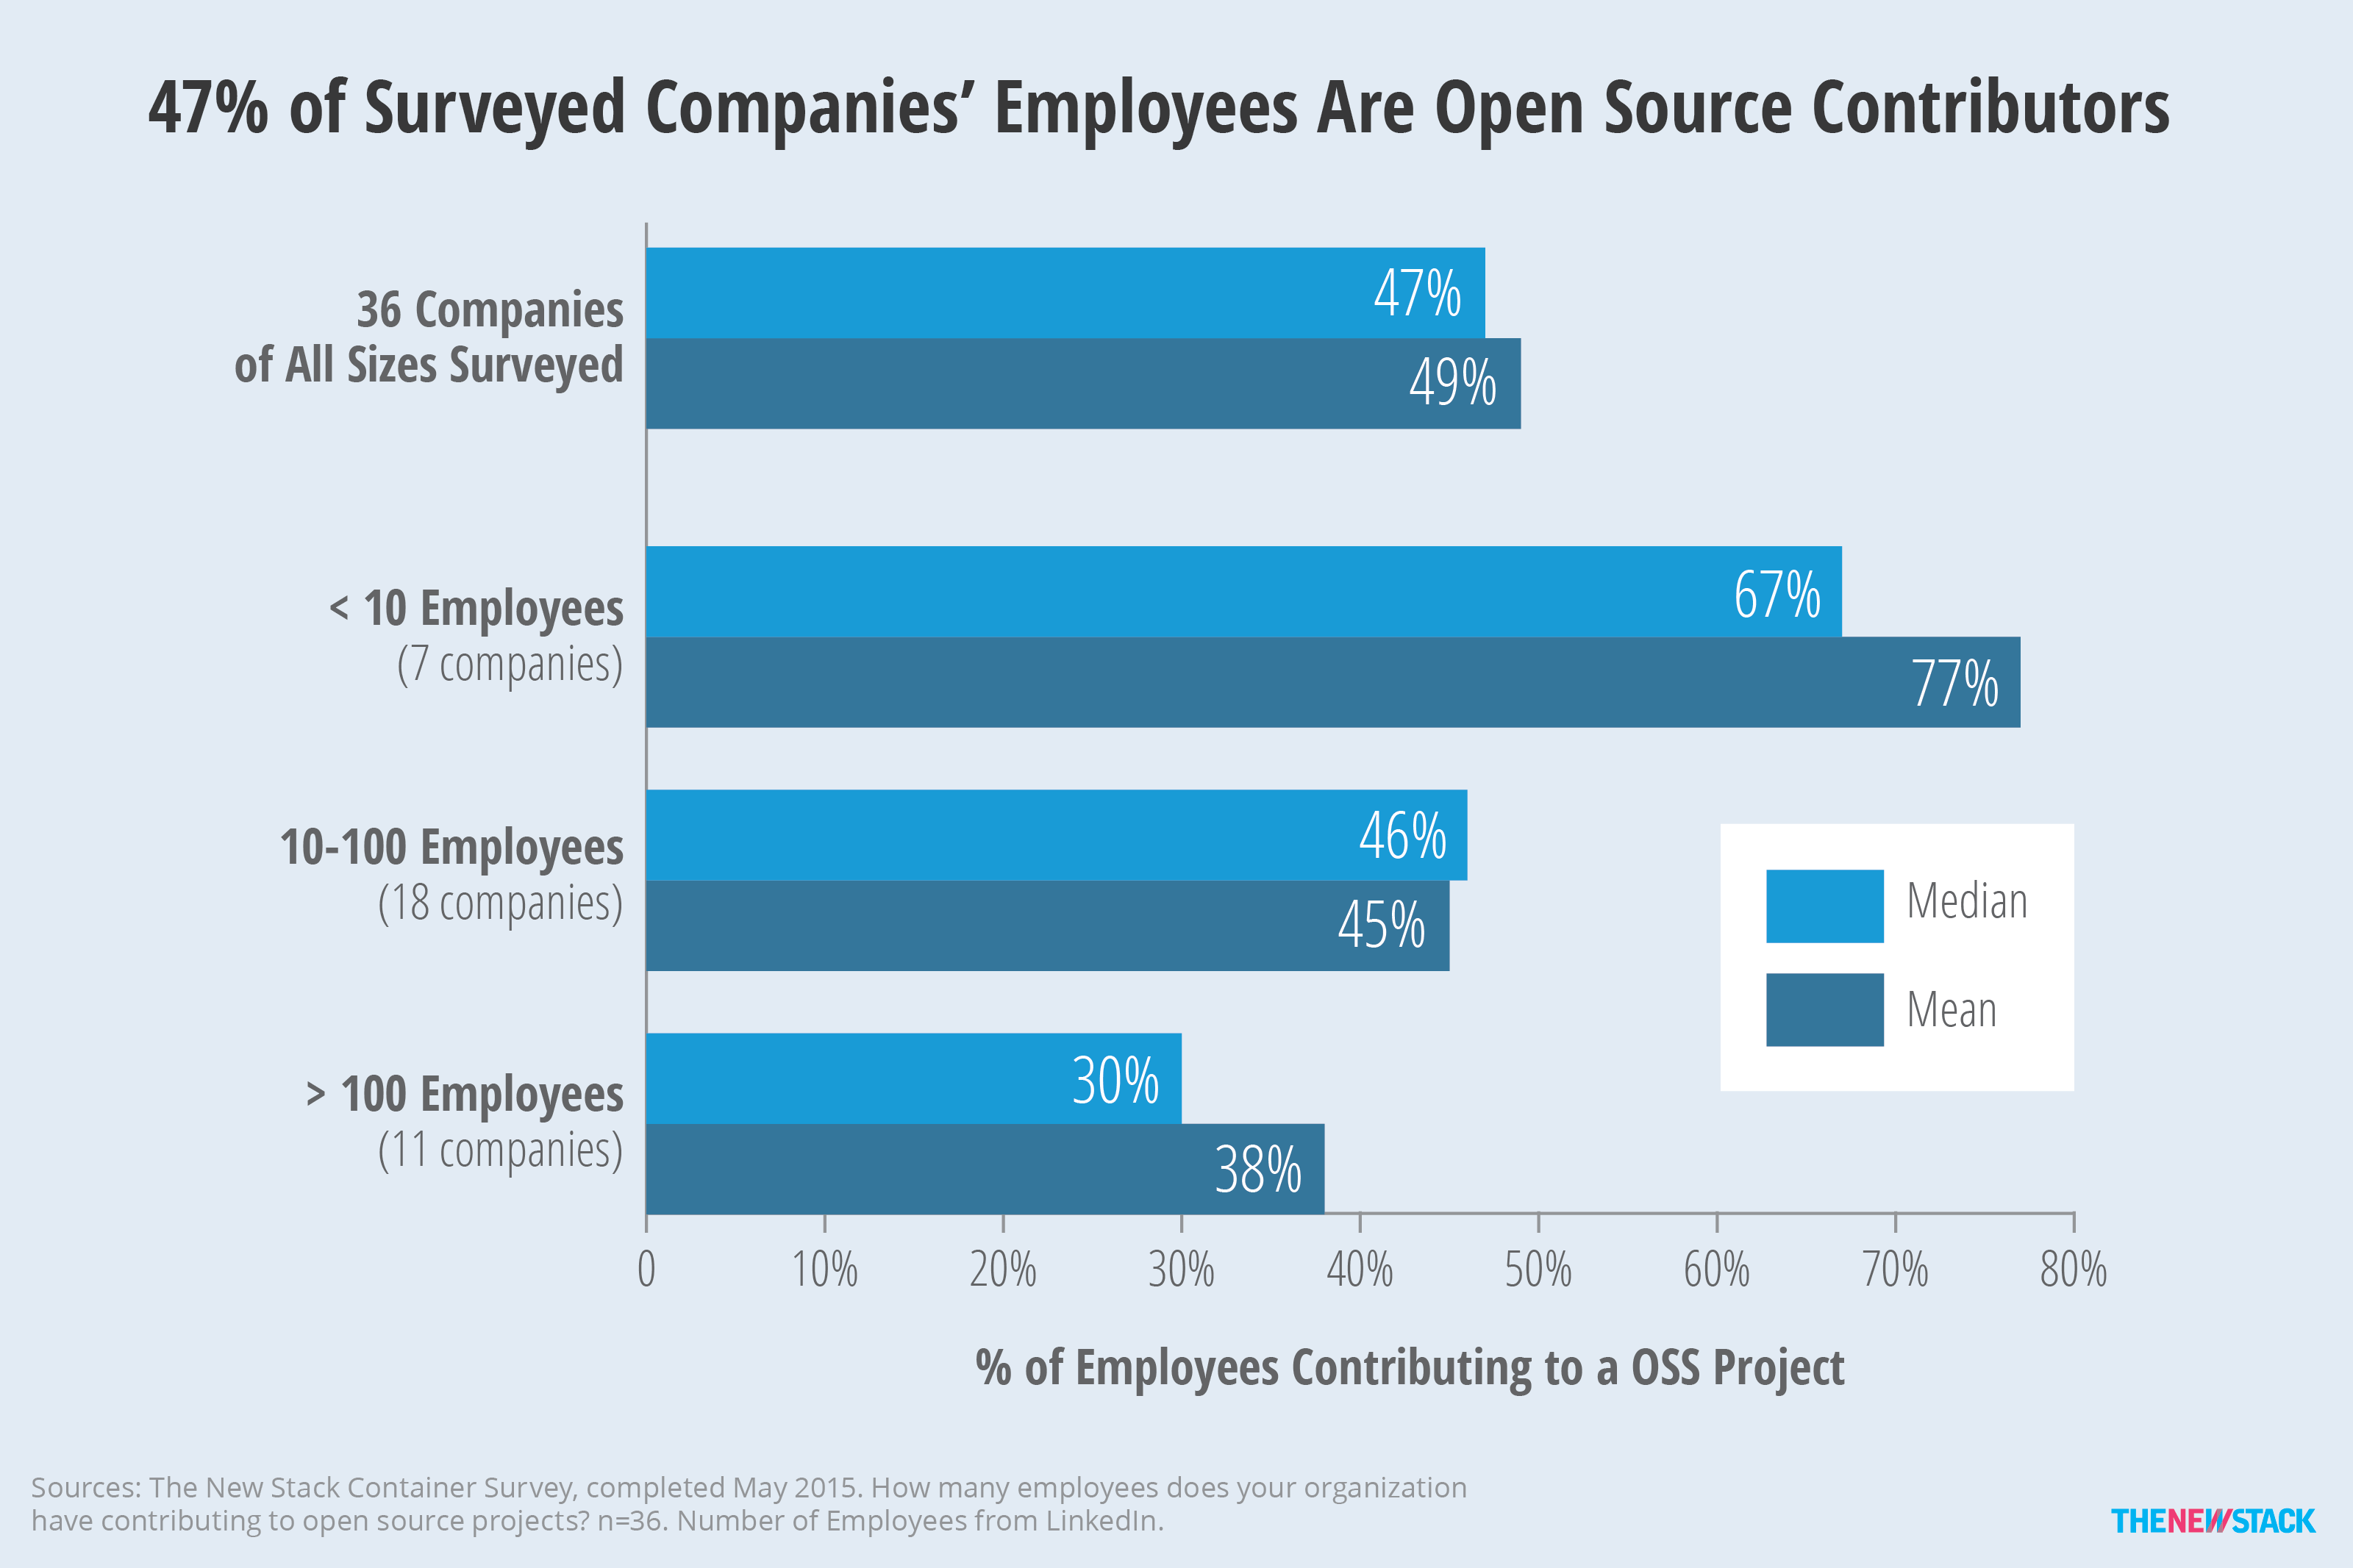 Survey data was combined with LinkedIn stats to get a different perspective on how many employees contribute to open source projects.